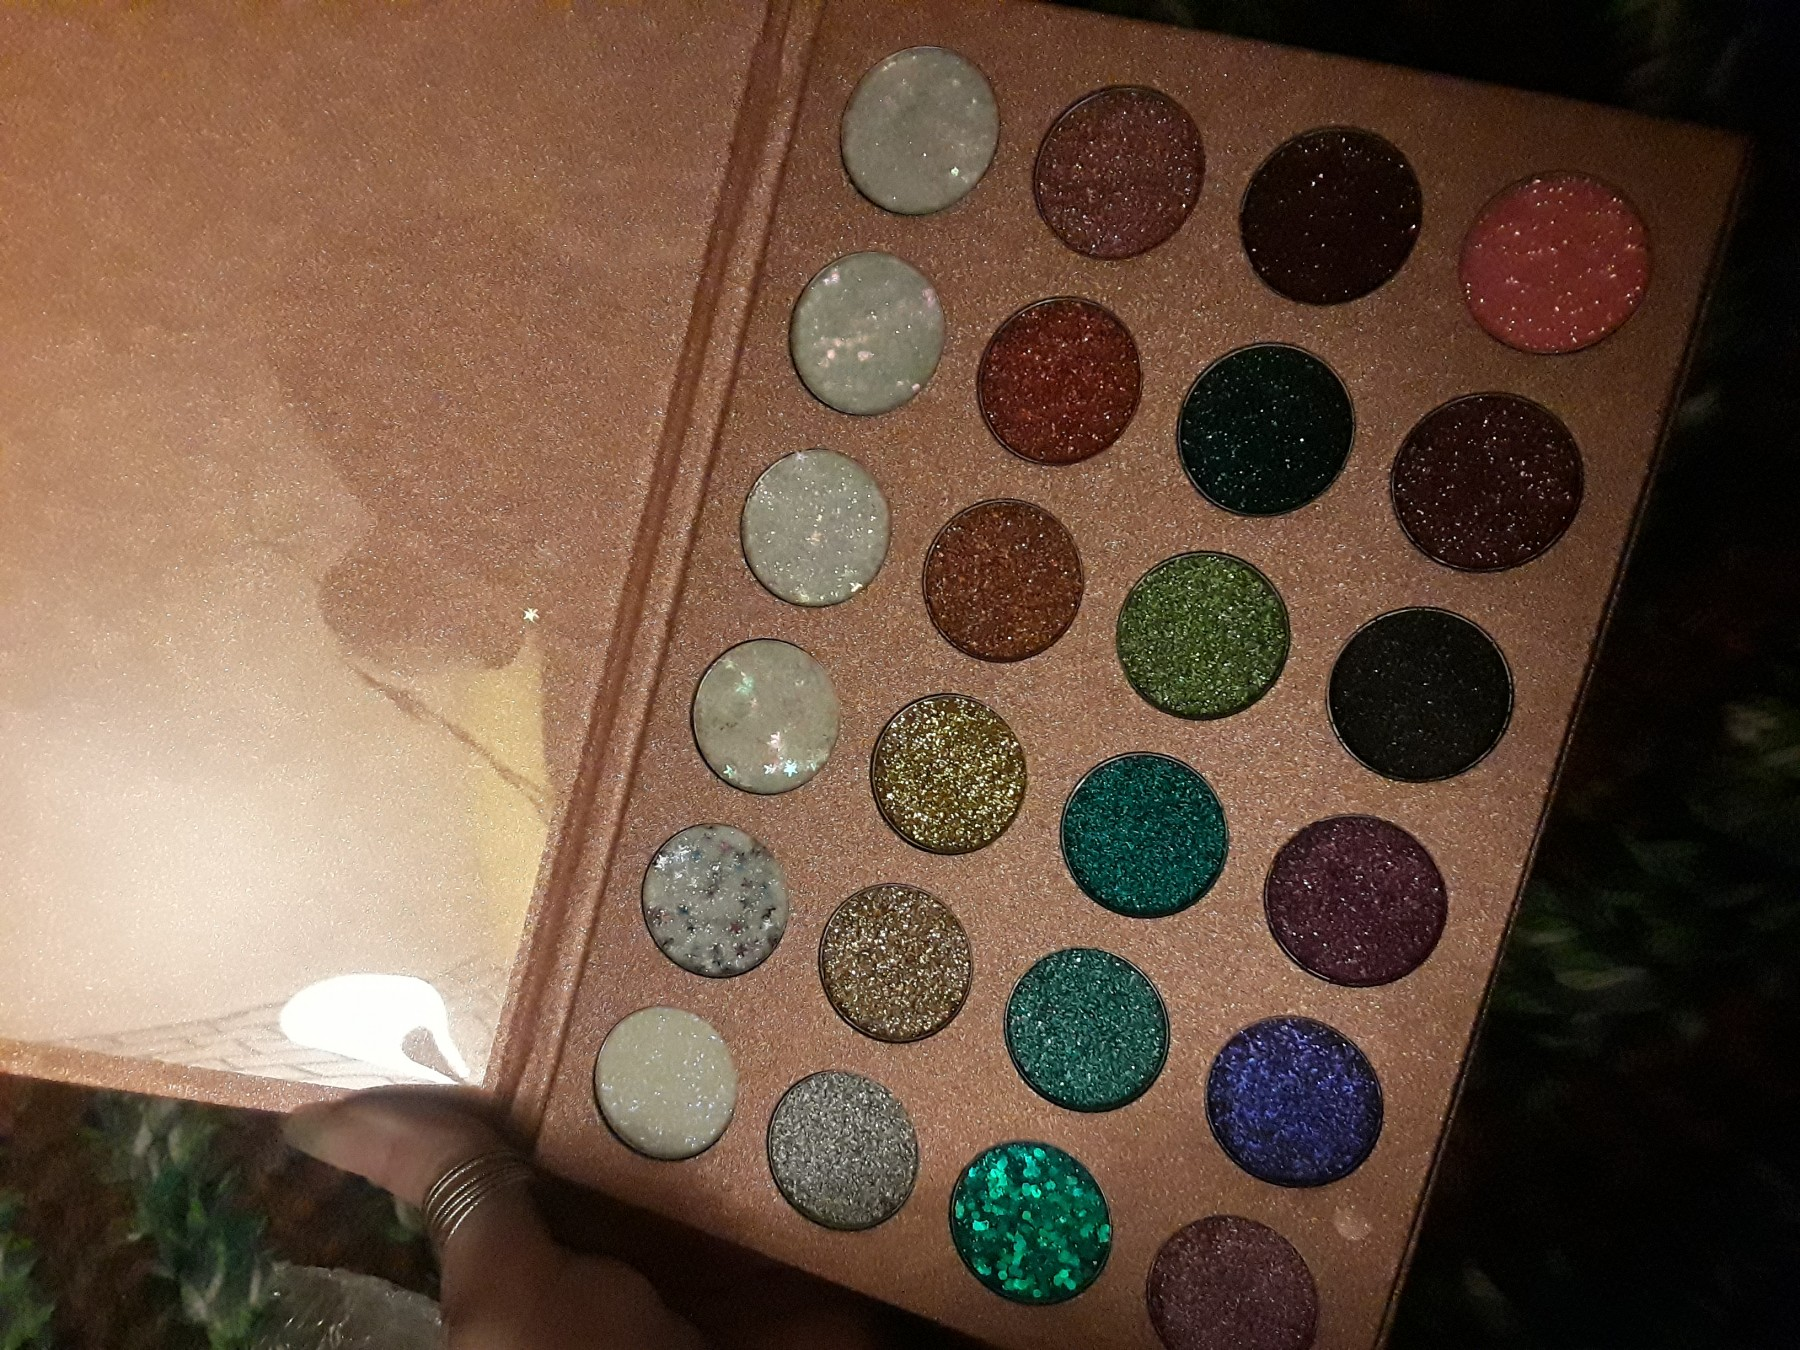 Super sparkly and larger than expected!